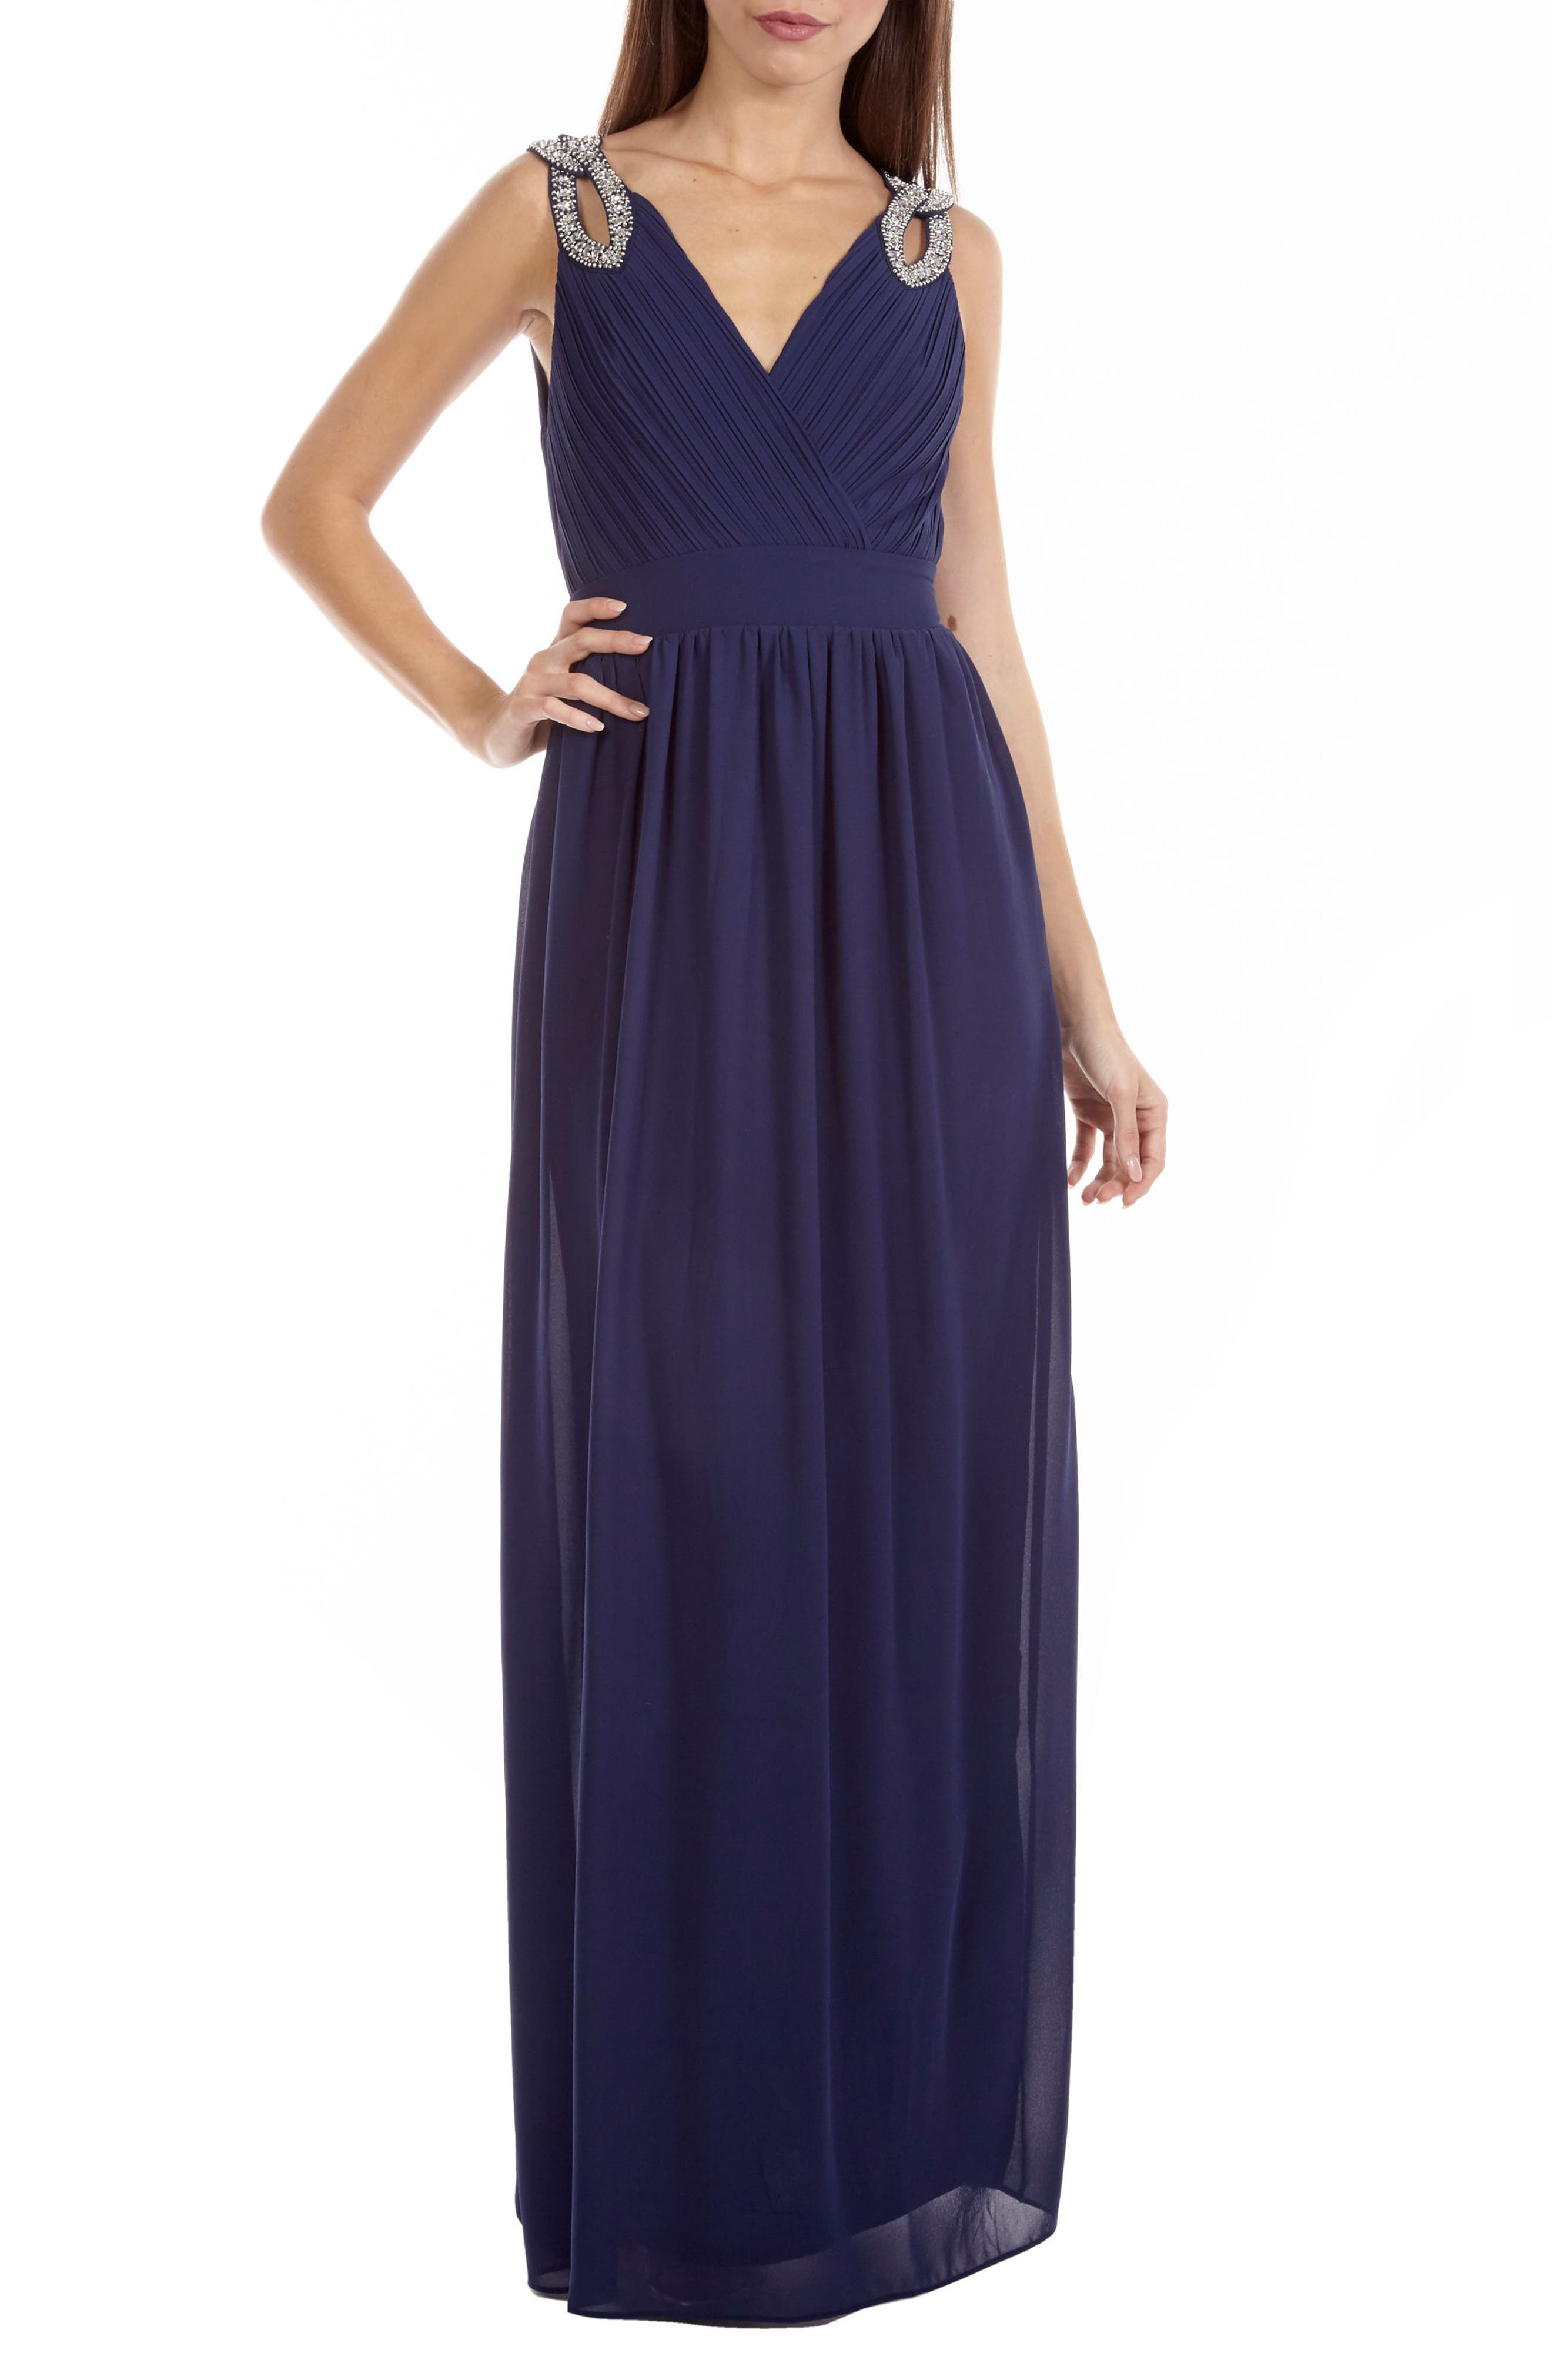 Debbie Embellished Pleated Chiffon Gown,                             Main thumbnail 1, color,                             410